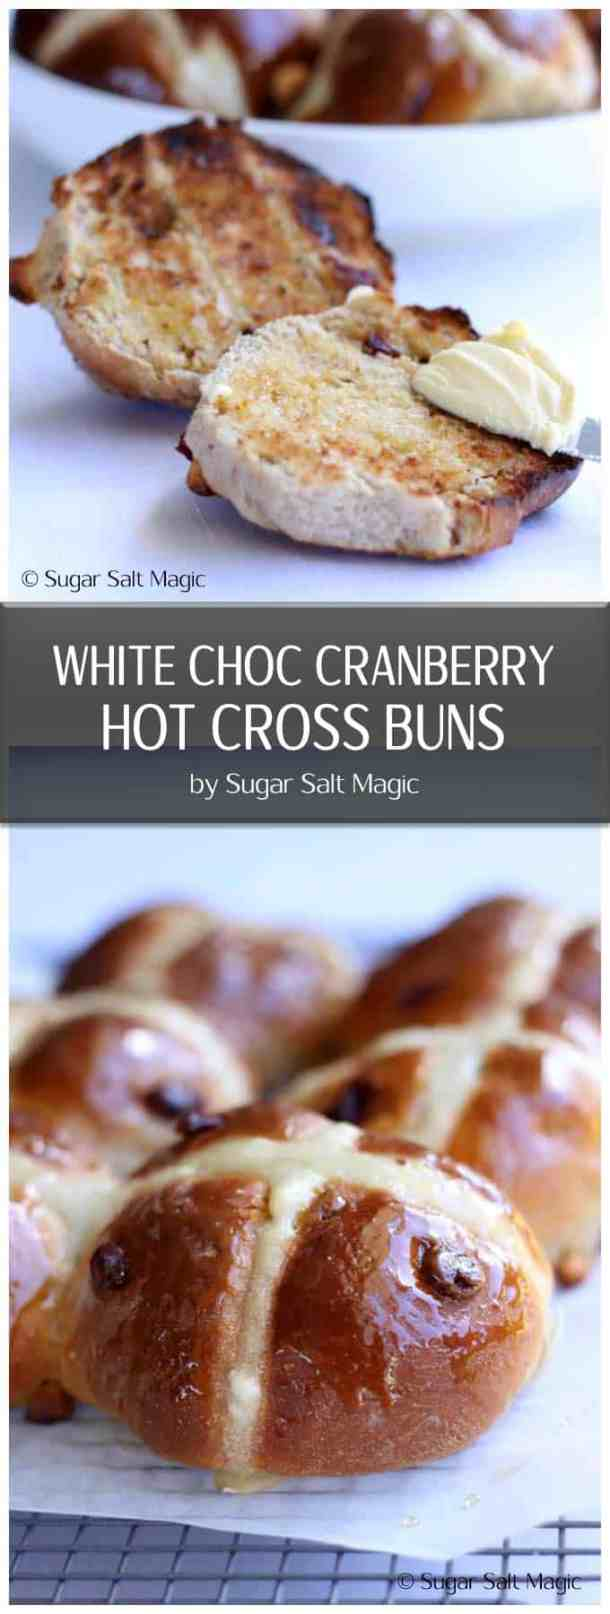 If your looking for an easy Hot Cross Buns recipe, then these easy hot cross buns with white chocolate and cranberries is perfect. #easyhotcrossbuns #hotcrossbuns